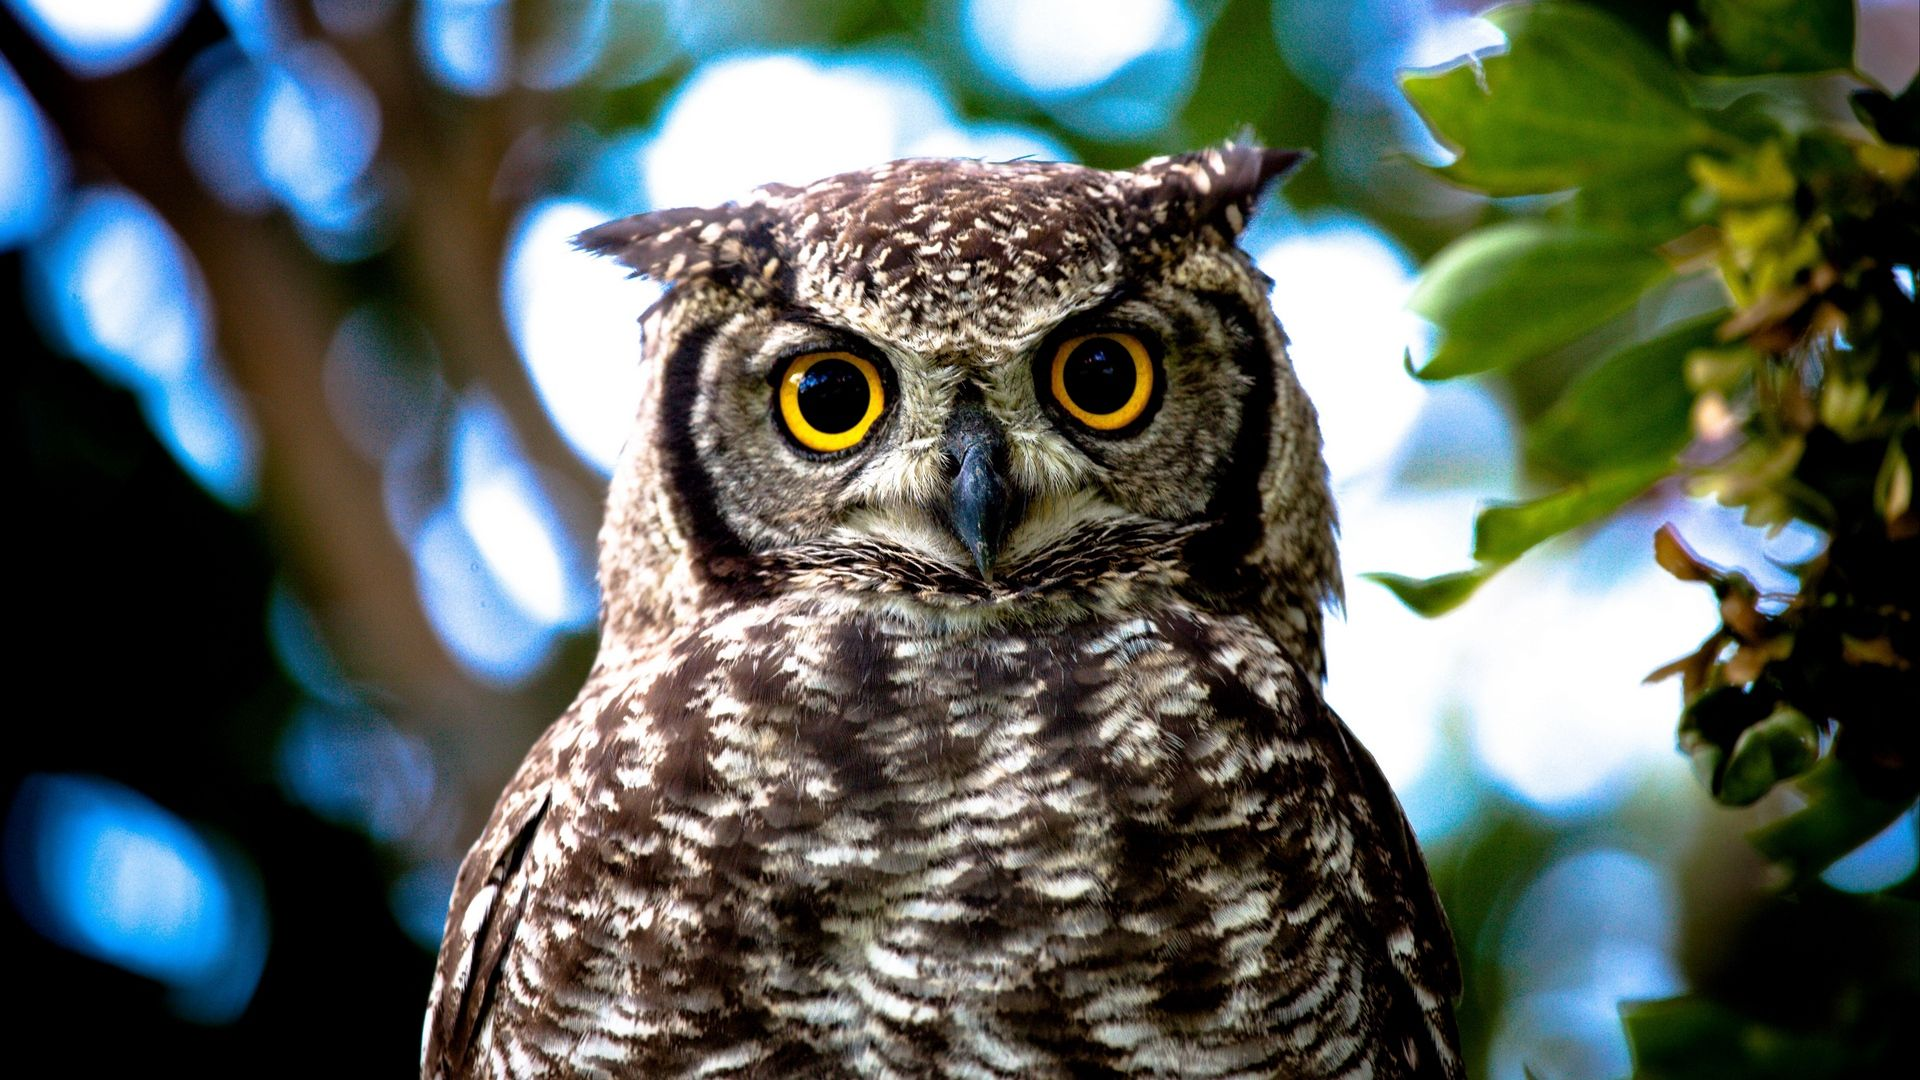 Owl Closeup In Good Quality